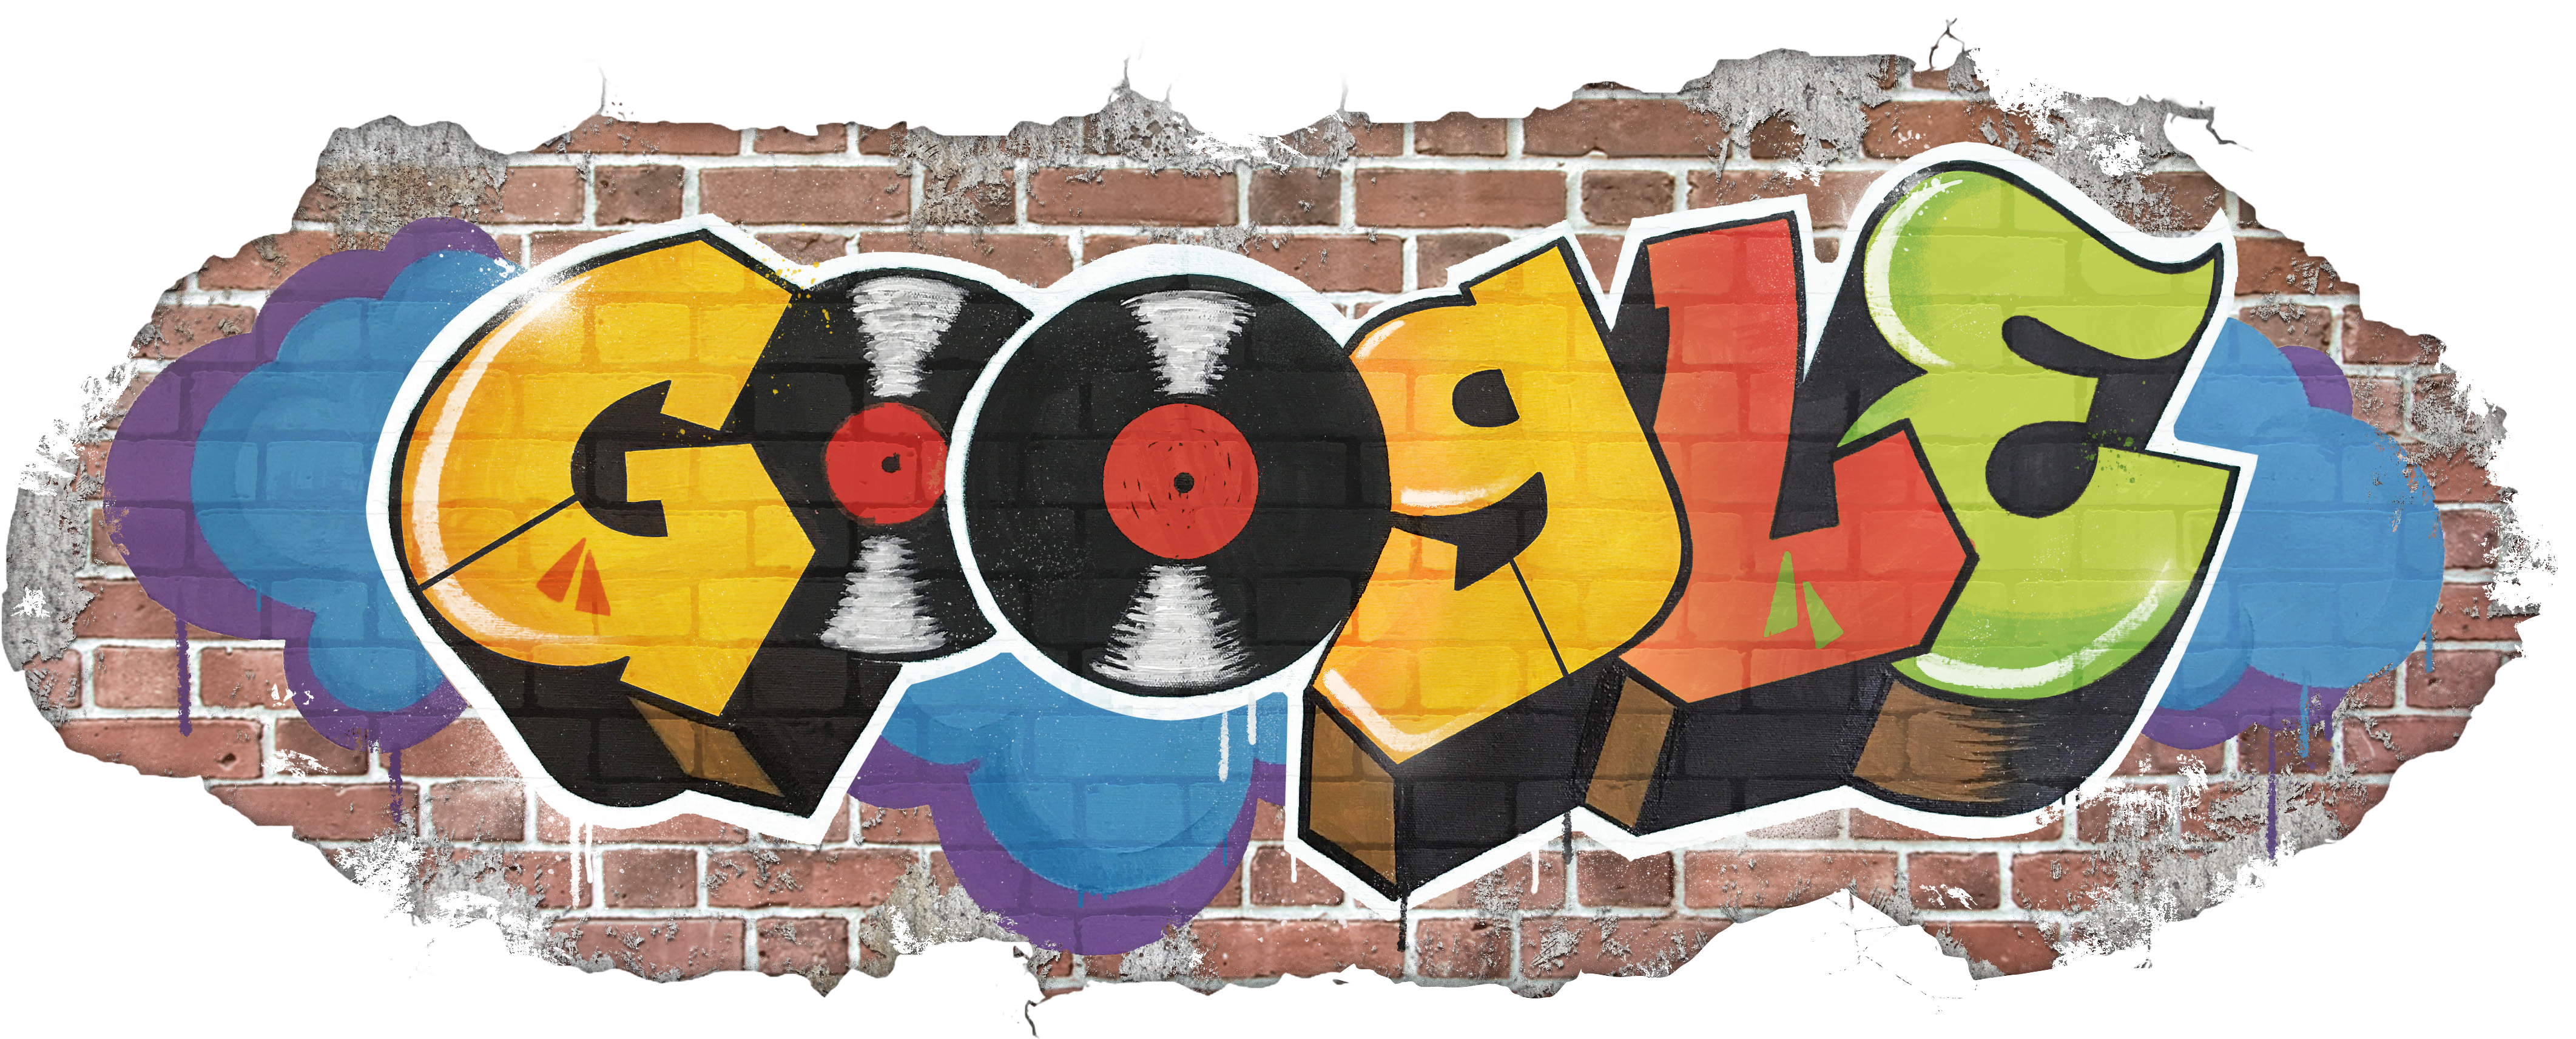 The illustrated Google Doodle showing the Google logo drawn in graffiti style lettering on a brick wall